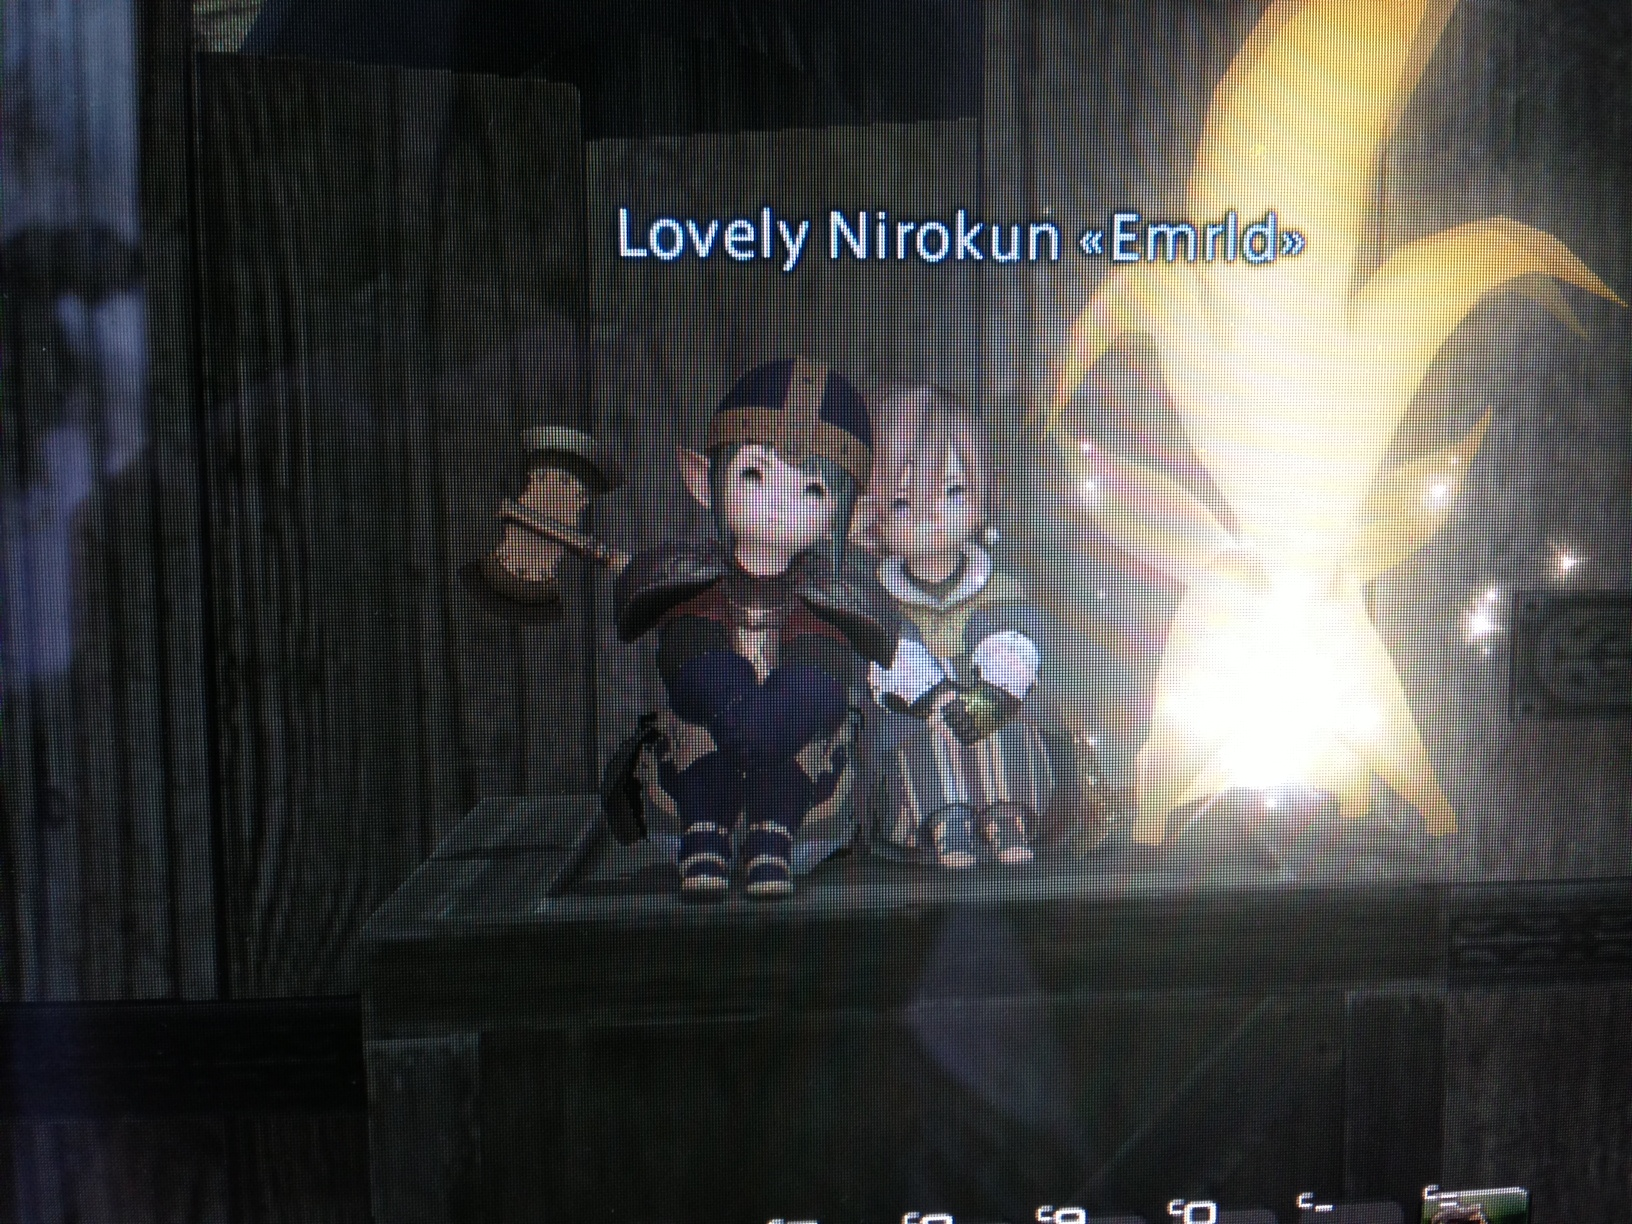 intense ffxiv know ears really this used shitpost with just like deal forum over month entire grind inb4 lala thread picture cute lalafell coming that fate posting soon